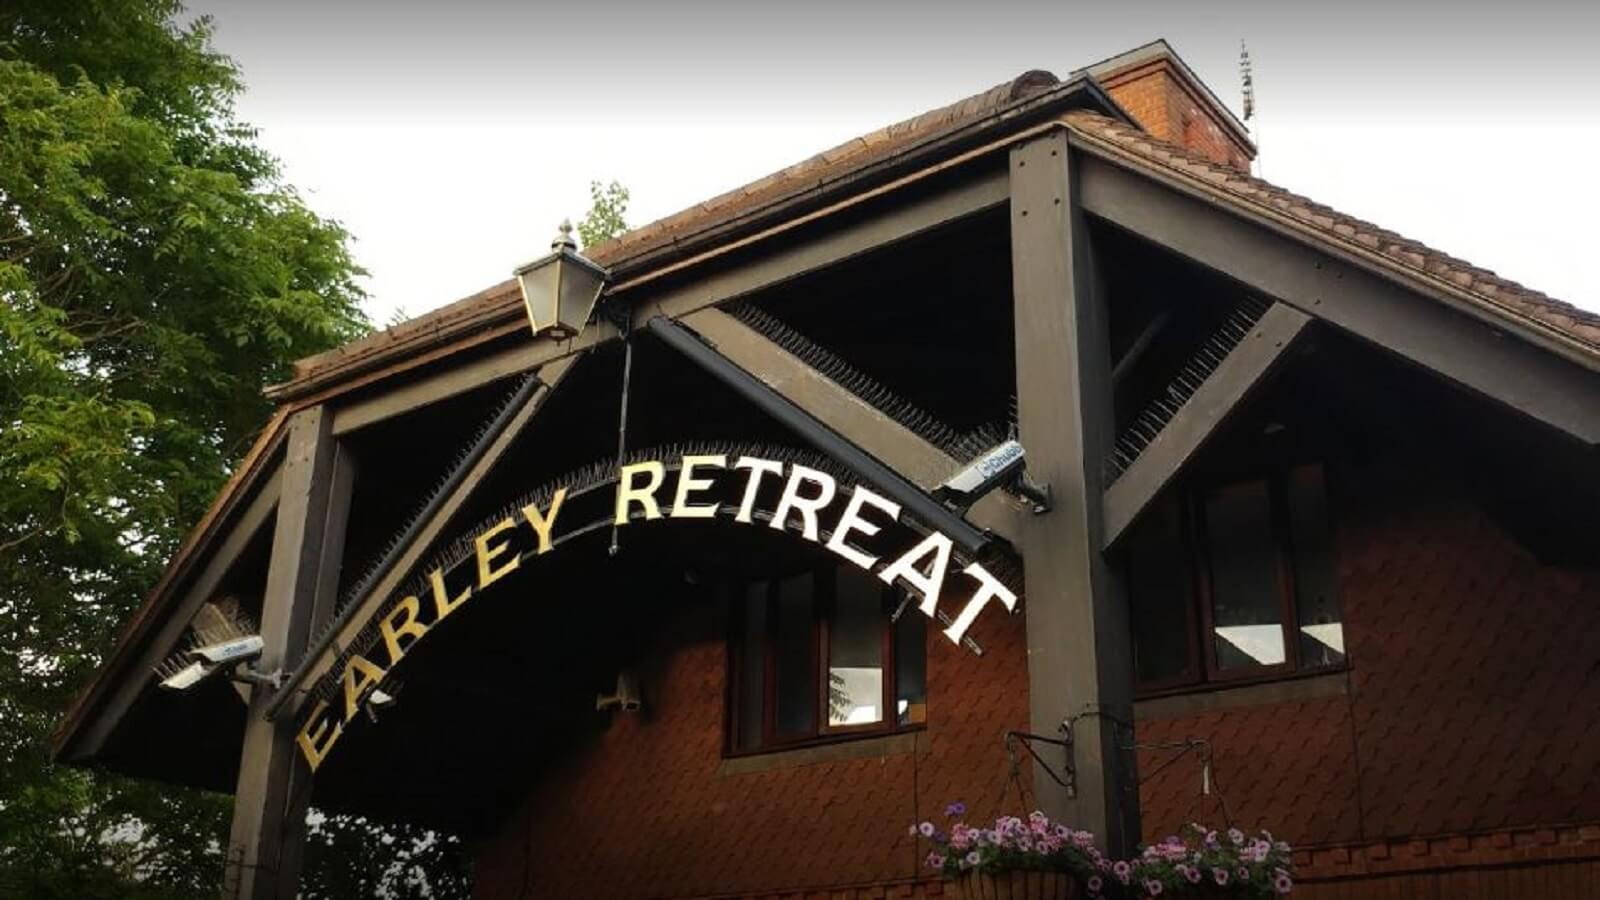 The Earley Retreat